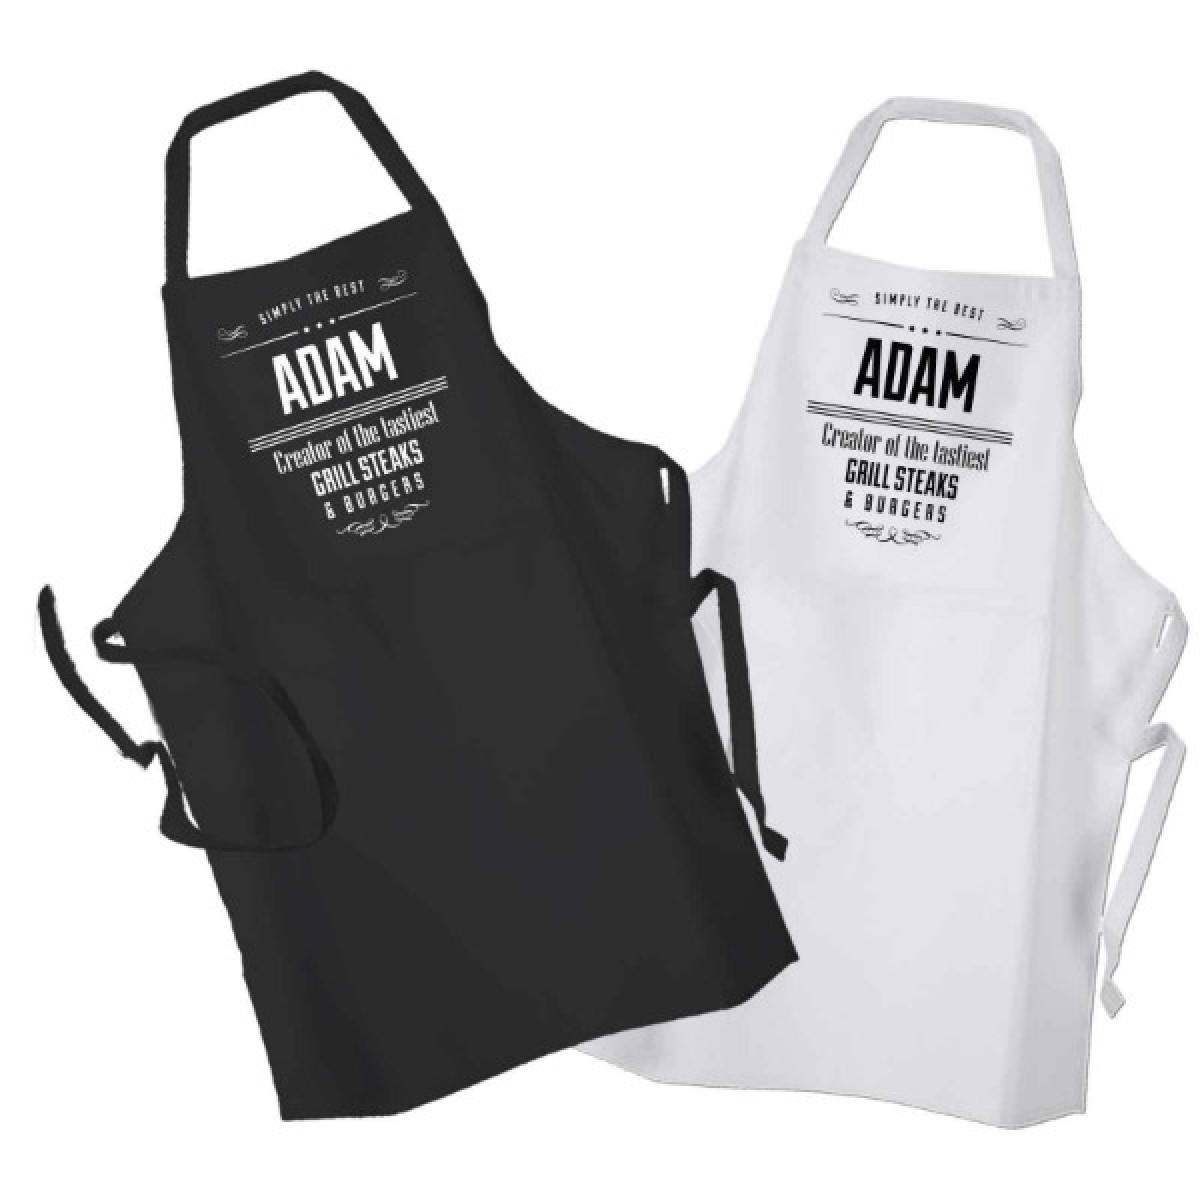 Chef Personalised BBQ & Grill, Cooking, Apron Black Or White. Change ...